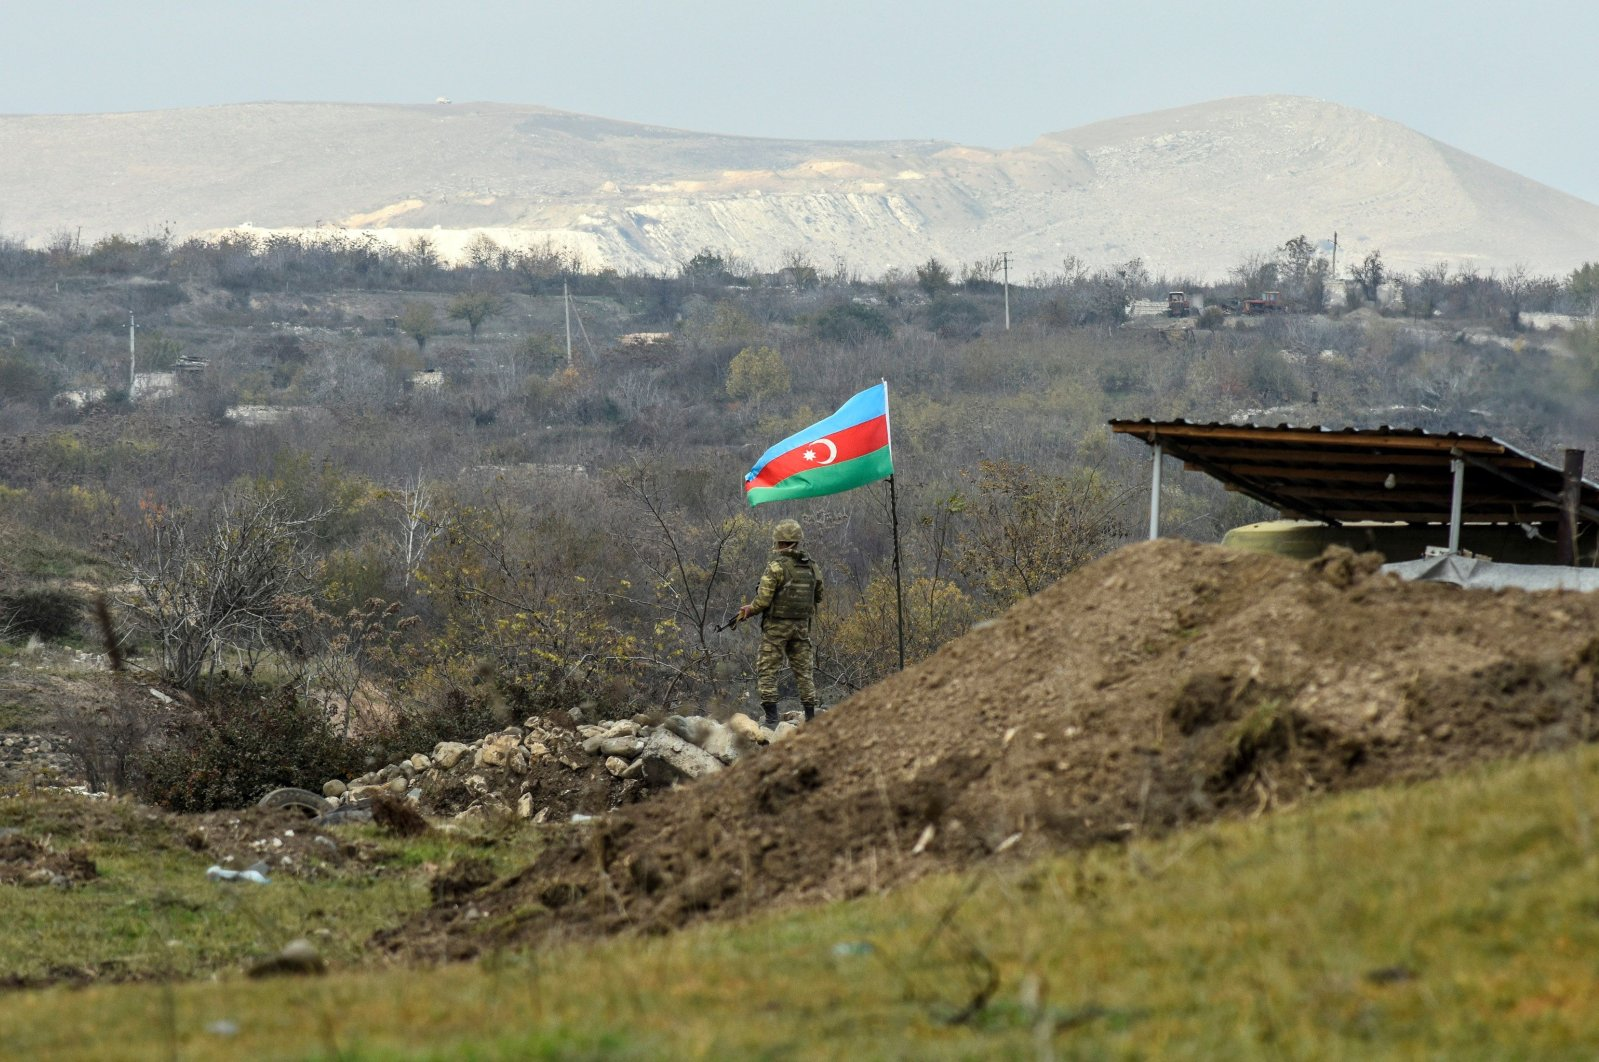 An Azerbaijani soldier stands guard at a checkpoint on a road entering Fuzuli from Hadrut a day after Baku's army entered the final district given up by Armenia under a peace deal that ended weeks of fighting over the Nagorno-Karabakh region, Azerbaijan, Dec. 2, 2020. (AFP Photo)